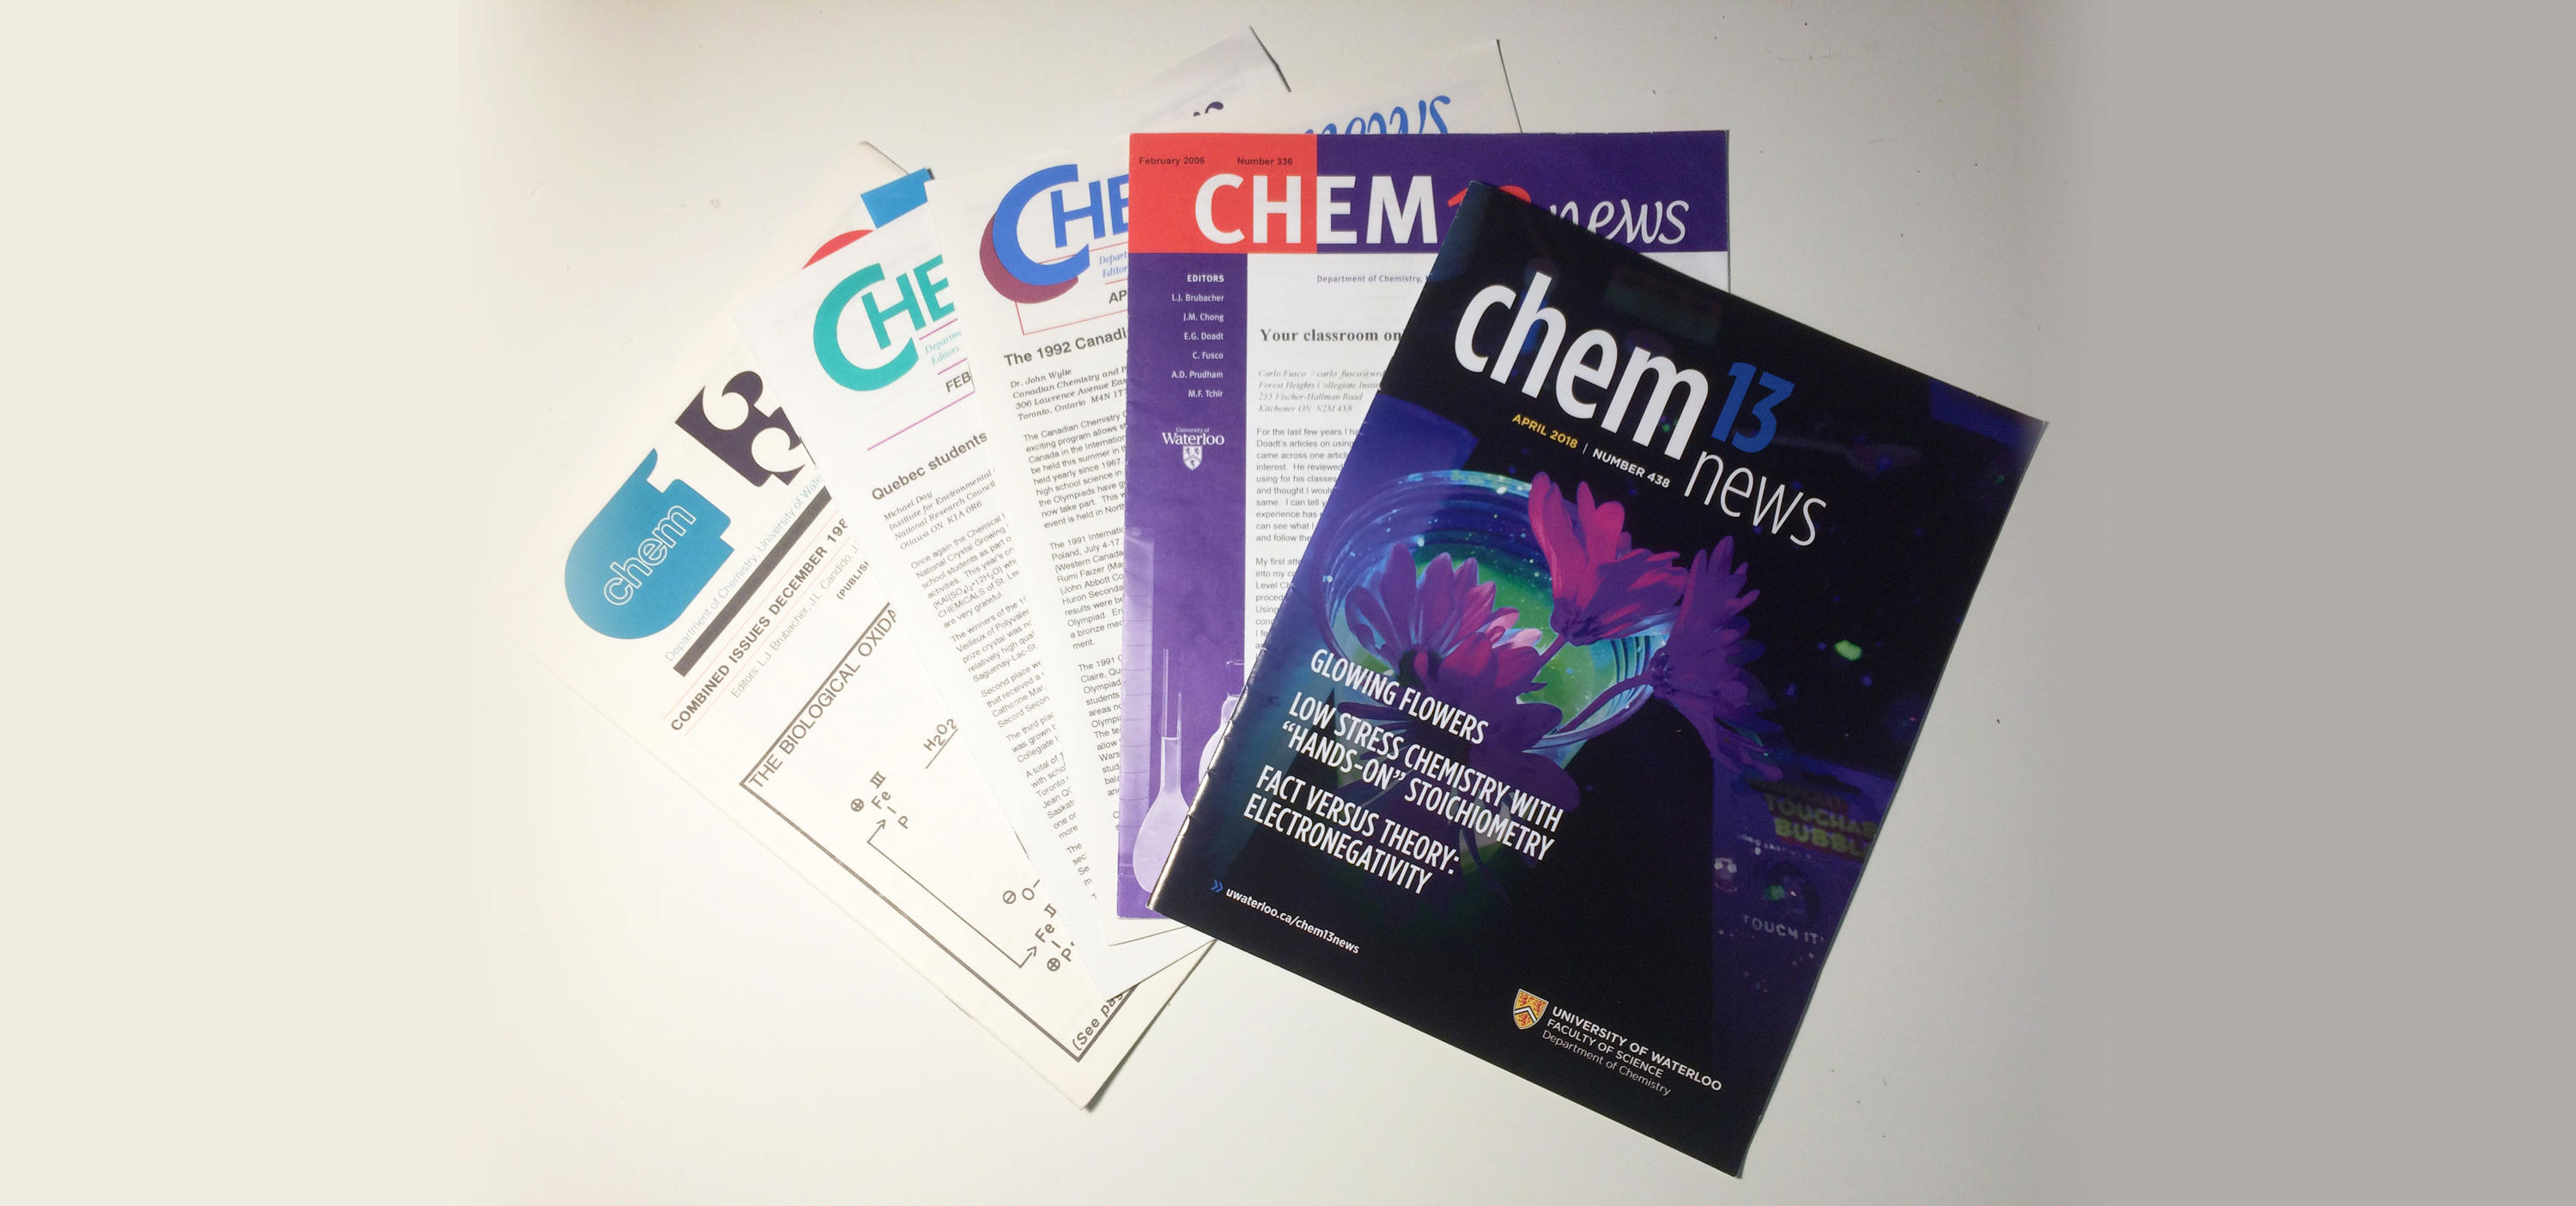 50 years of Chem13 News magazine covers.